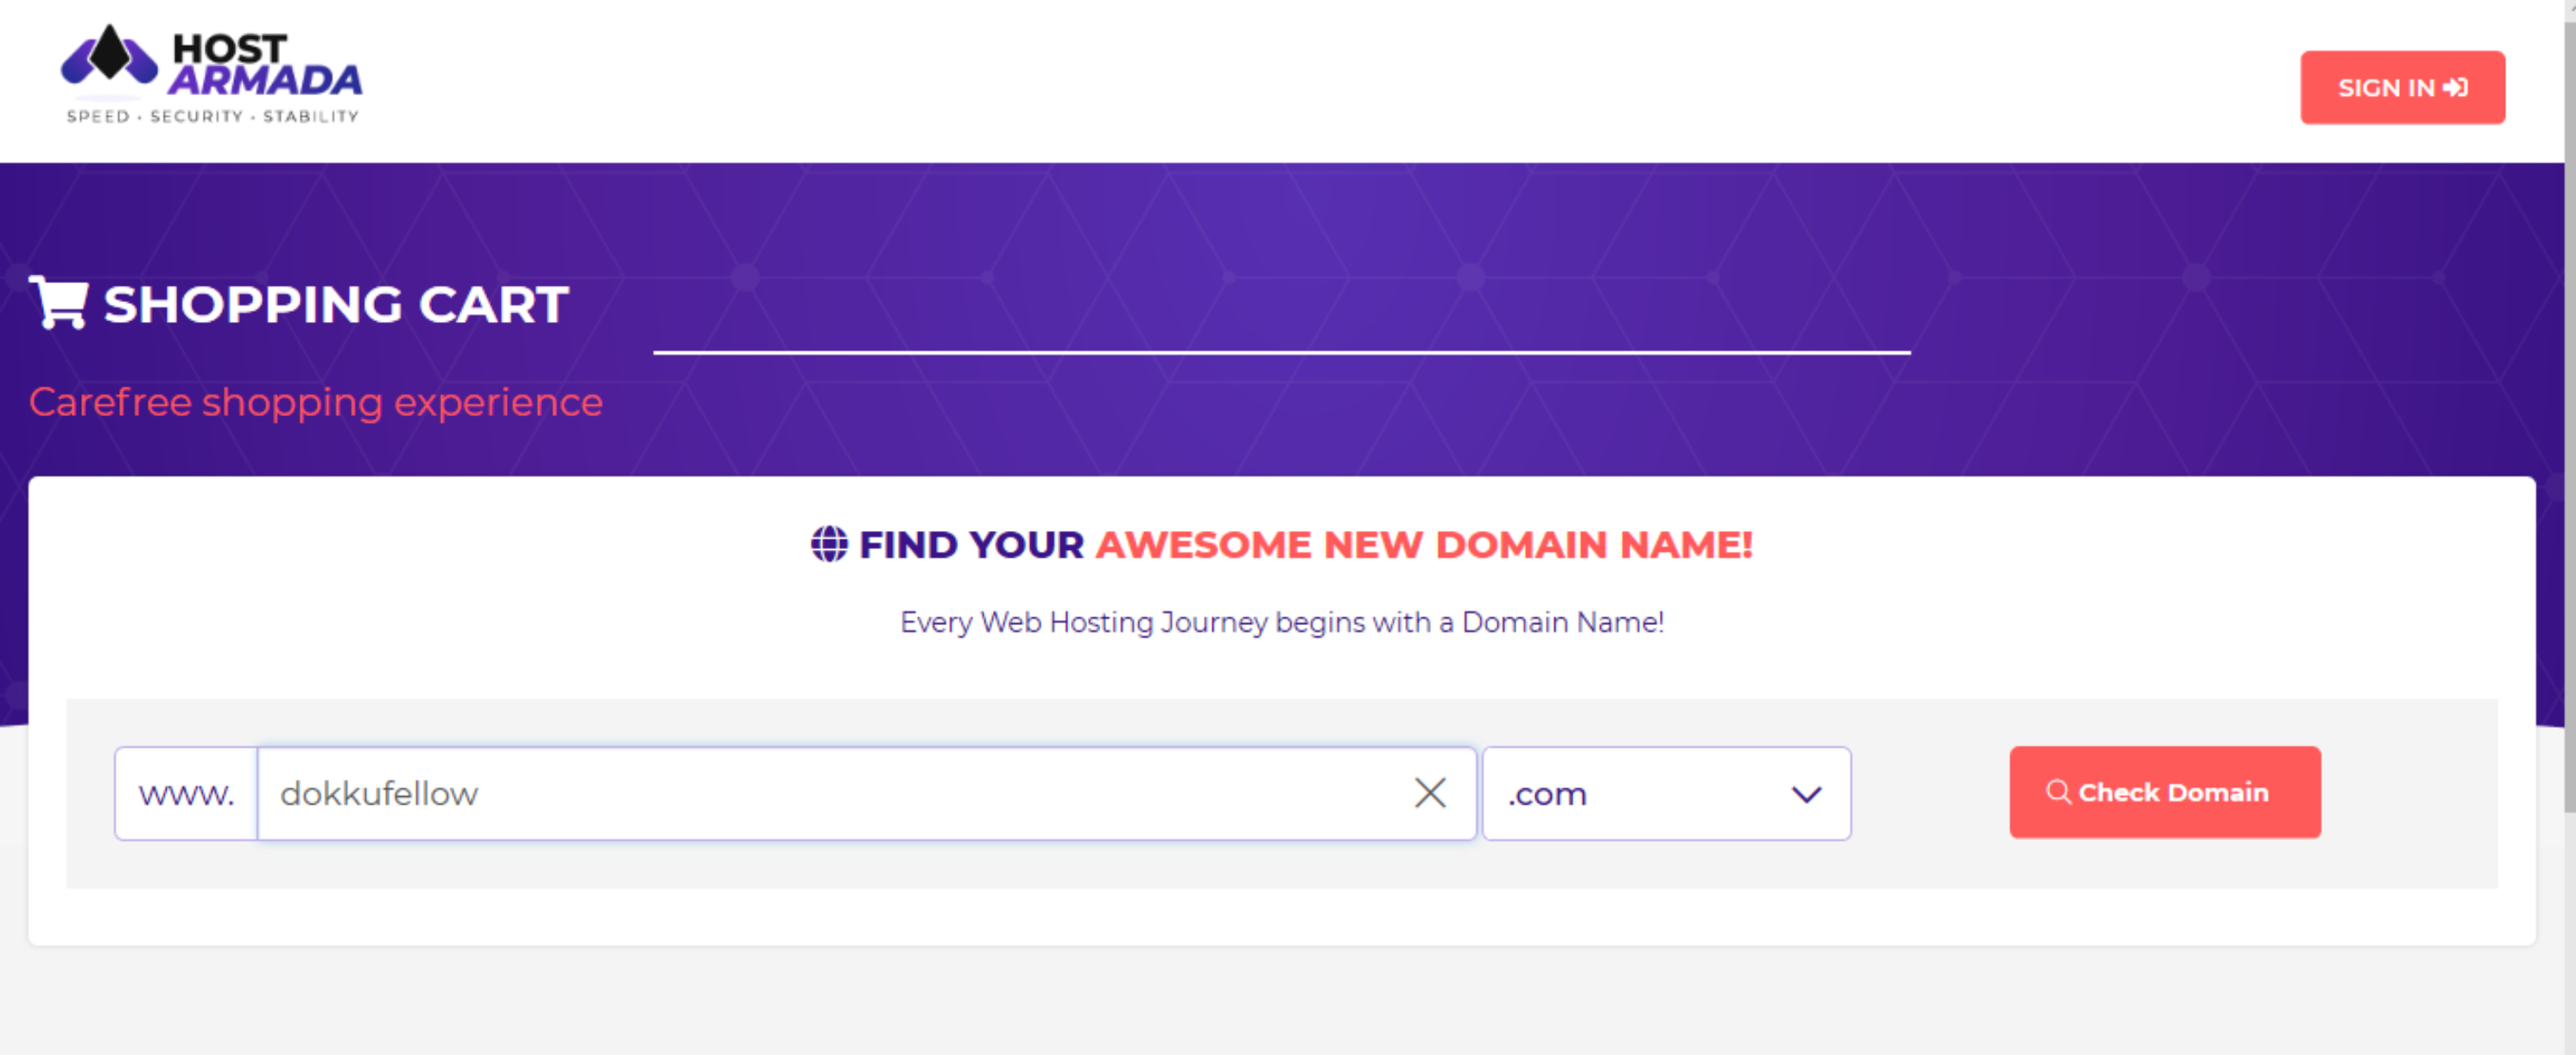 finding new domain name with HostArmada